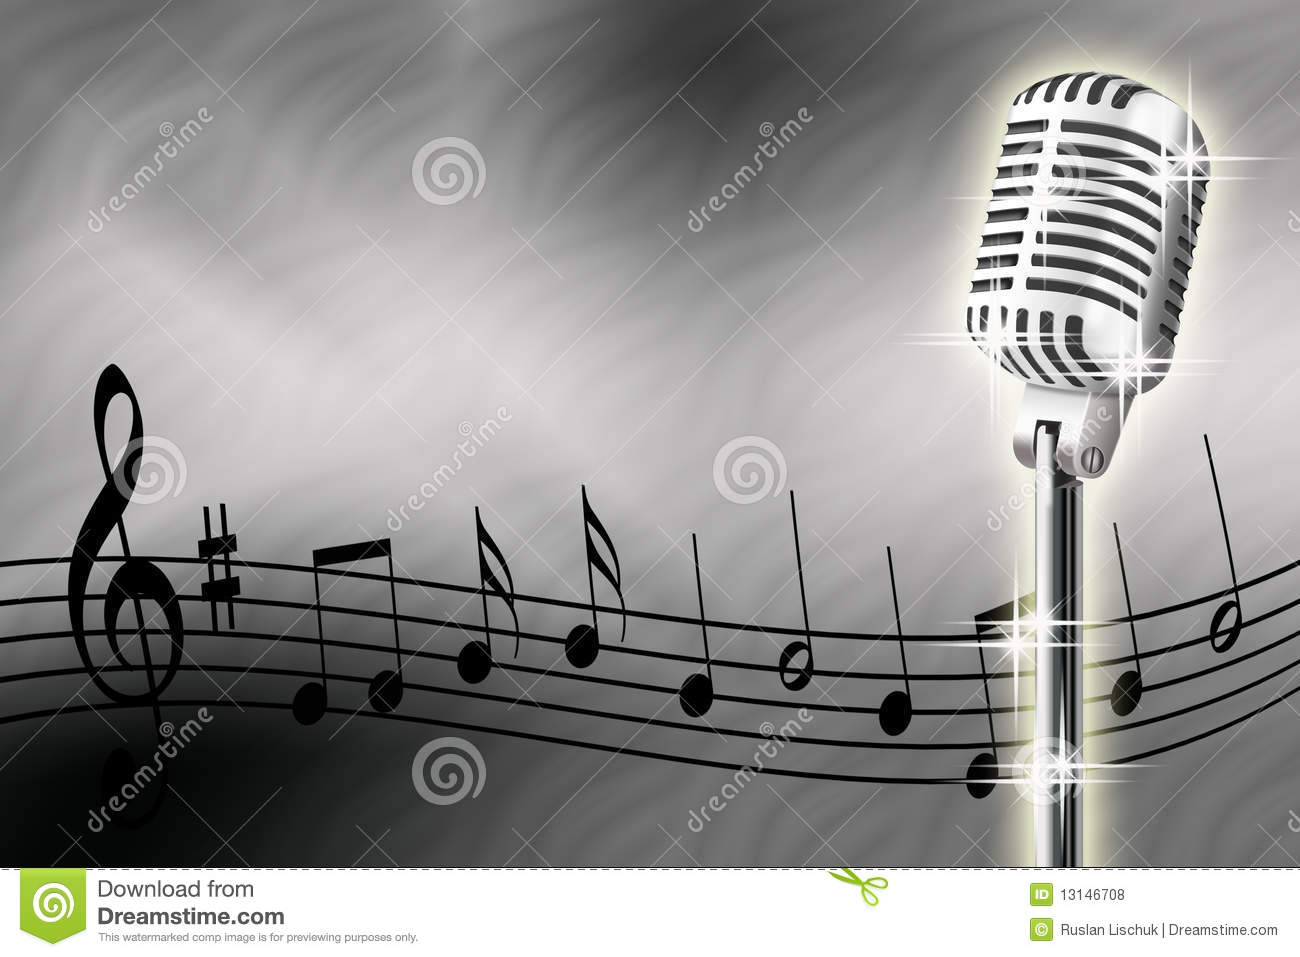 Illustration of microphone and musical notes on a white background.